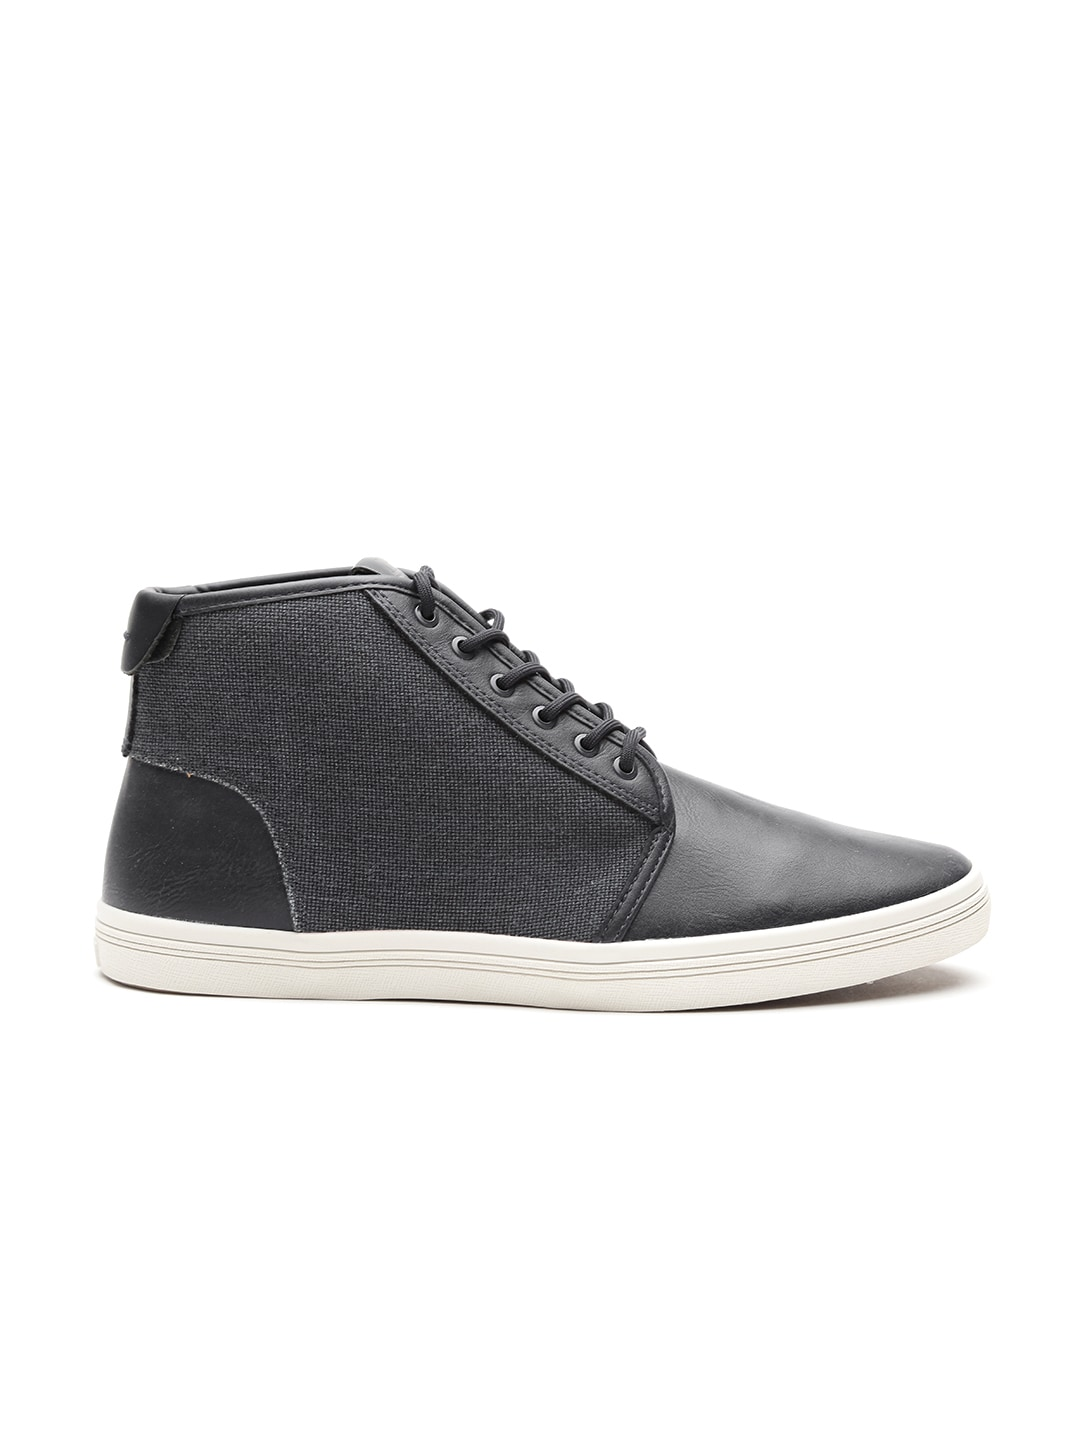 bec84af2a8f ALDO Shoes - Buy Shoes from ALDO Online Store in India